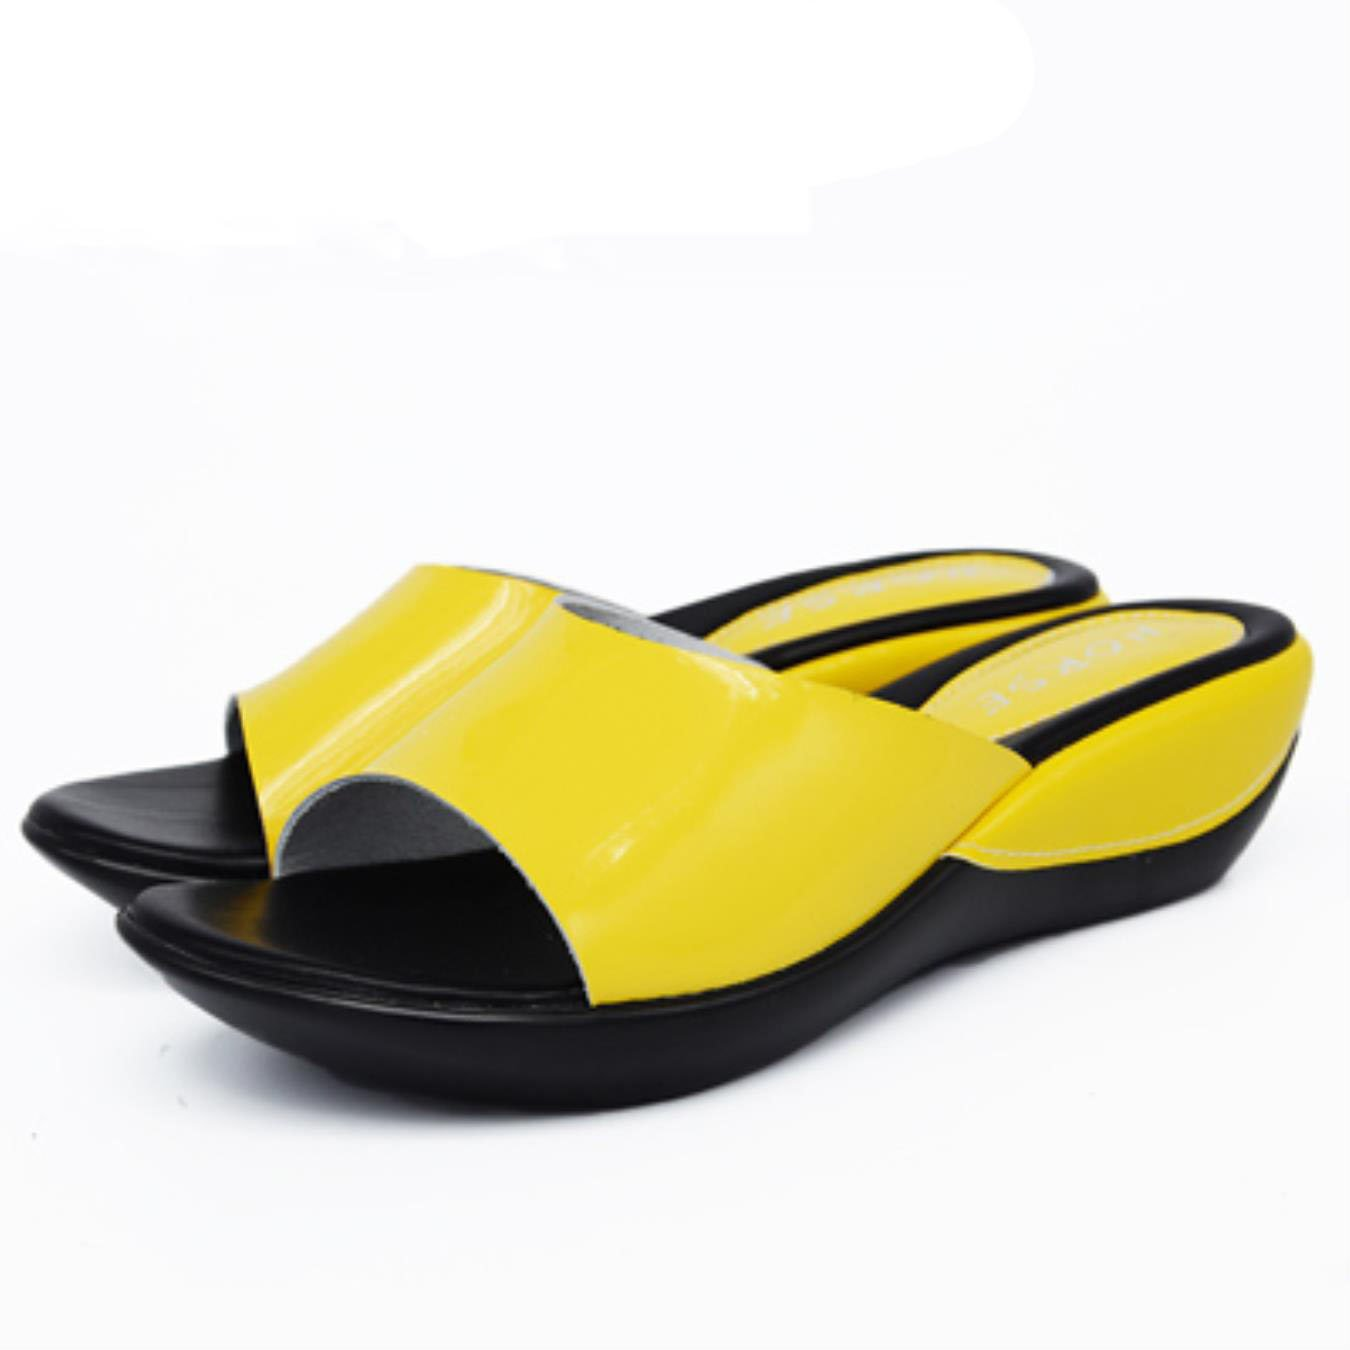 3a297db64136 Amazon.com  Women Flat Platform Slides Shoes Summer Leather Wedges Platform  Slippers Sandals for Ladies Casual Slippers  Clothing